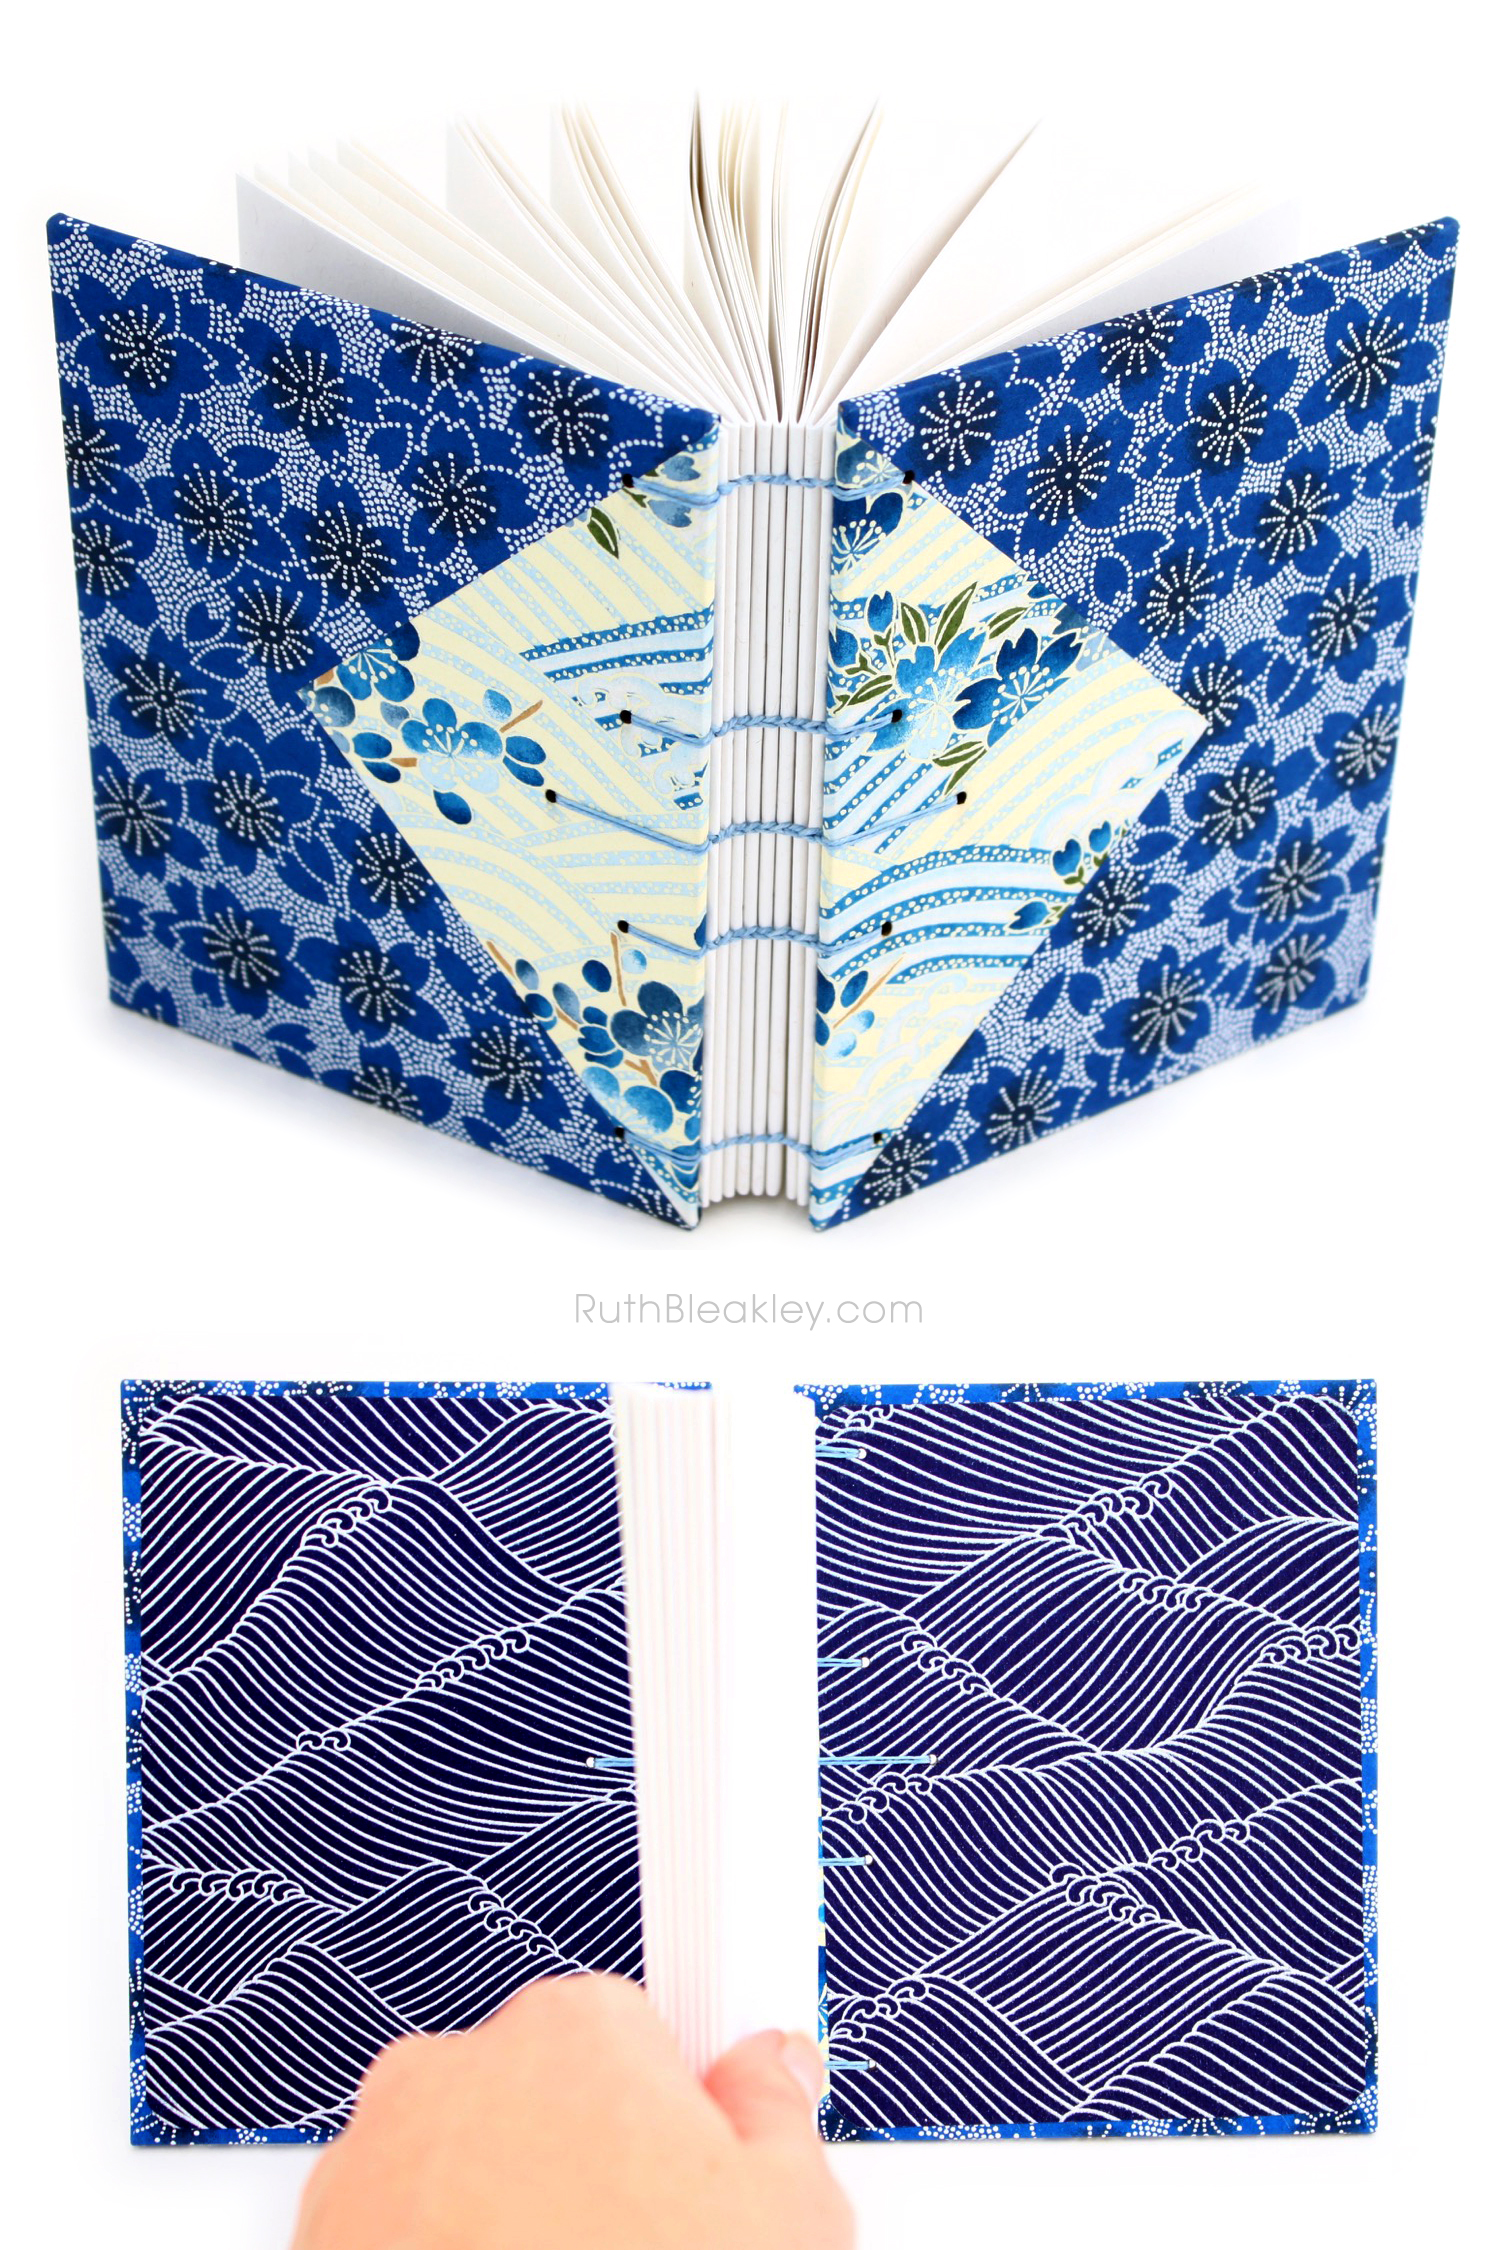 Blue flowers Twin Journals handmade by Ruth Bleakley Coptic Stitch with Japanese Yuzen Paper - 11